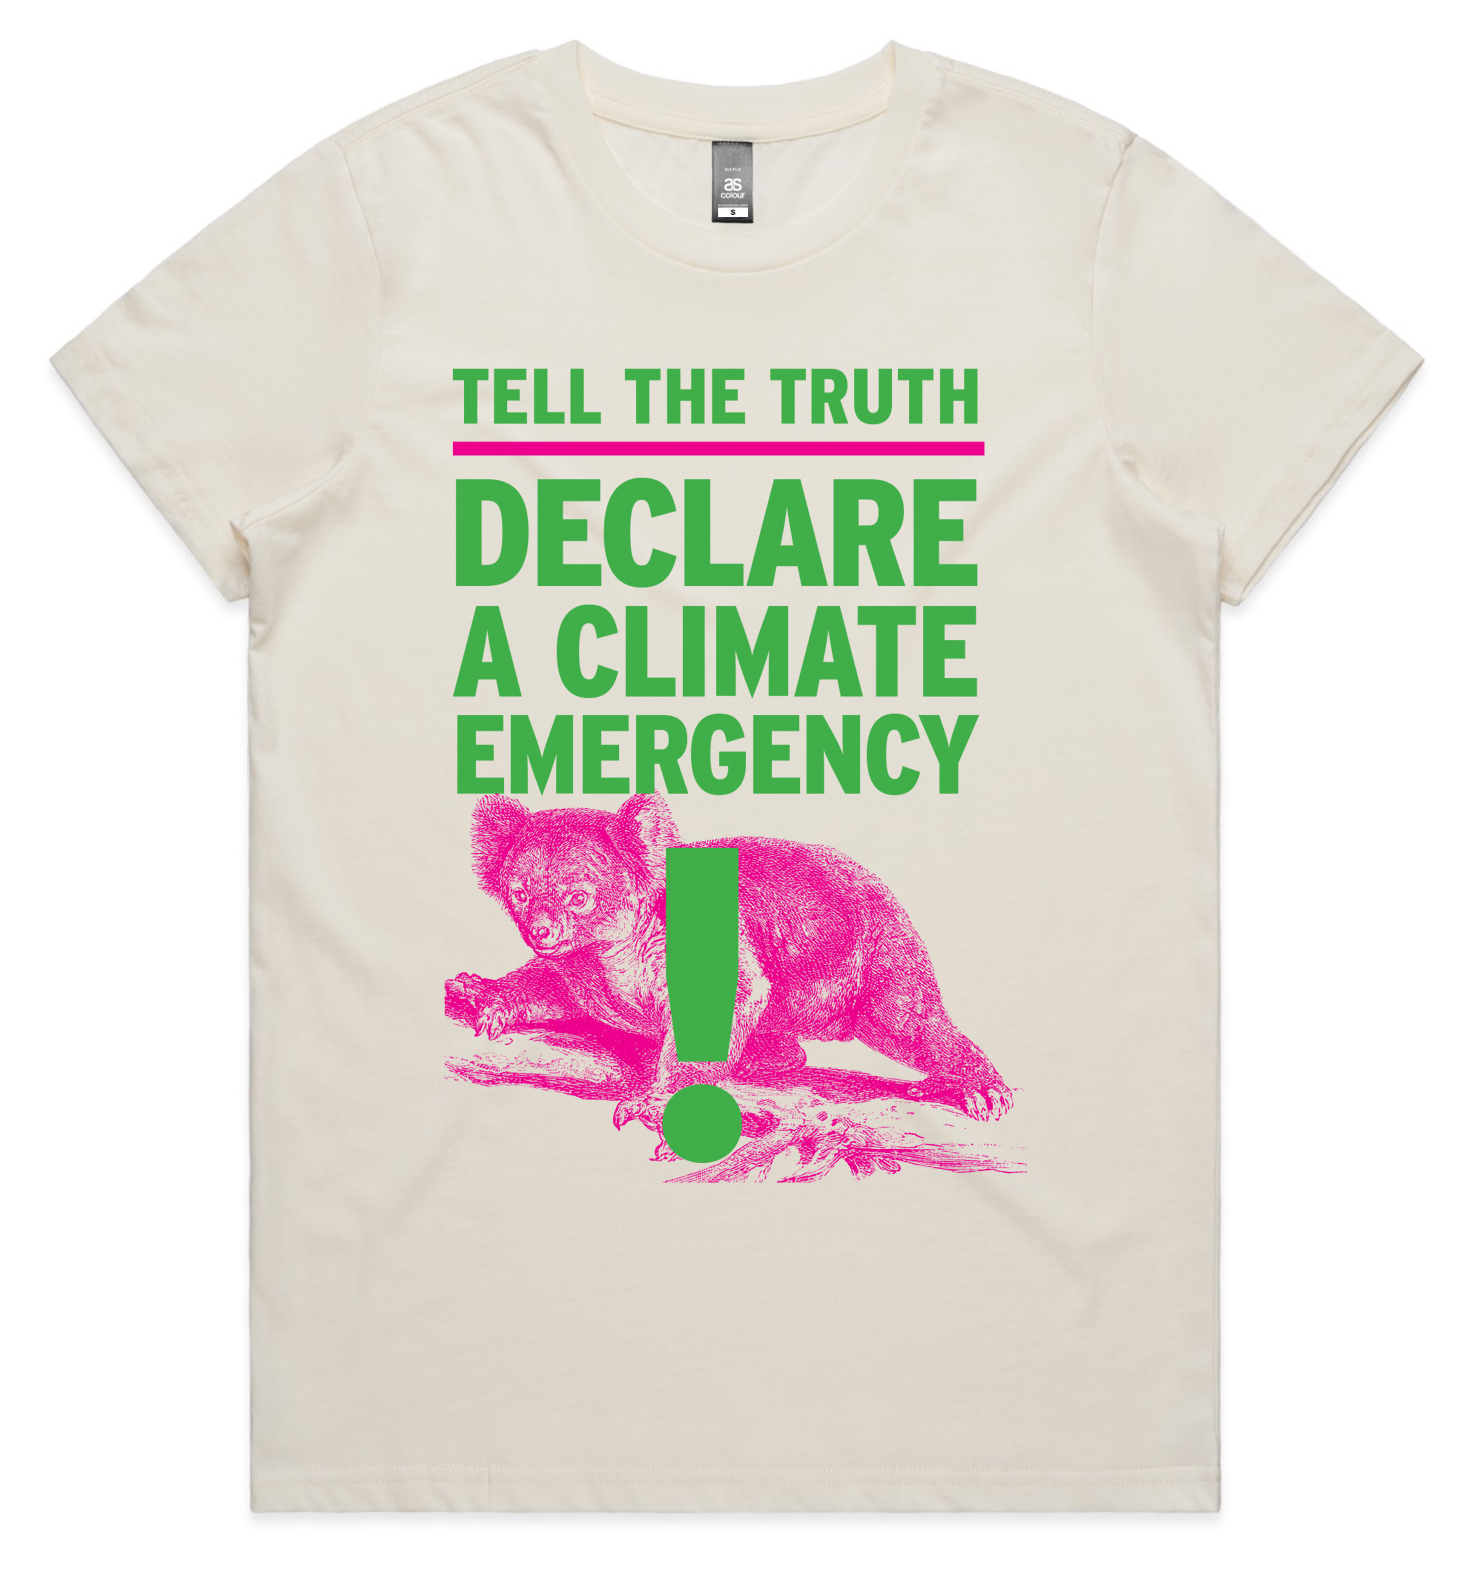 Tel The Truth - Declare a Climate Emergency